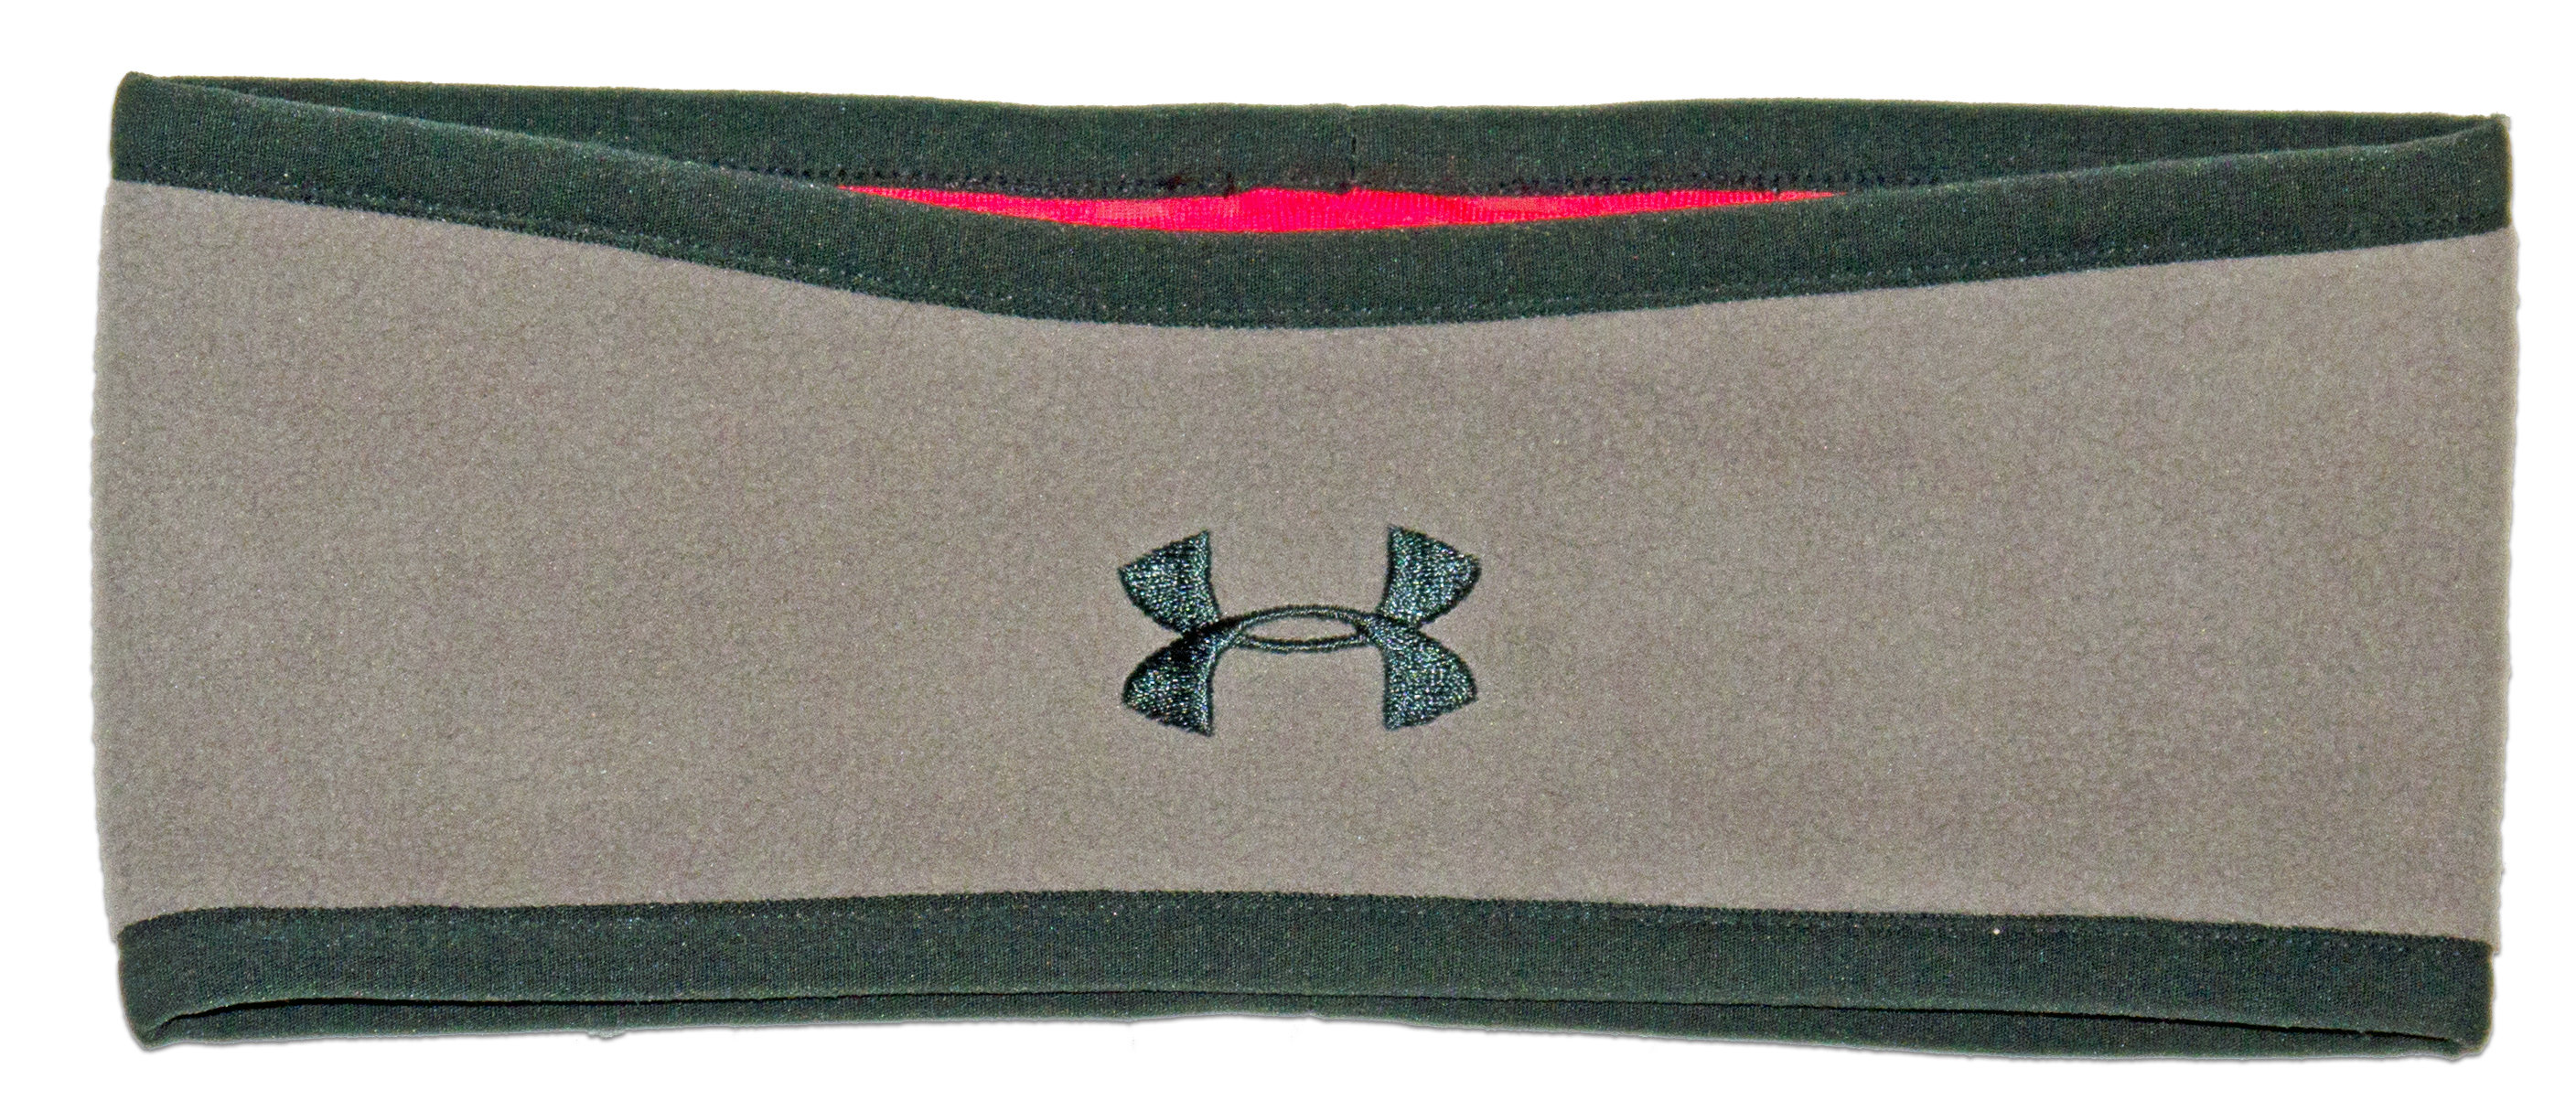 Under Armour Women's ColdGear Steeple Gray/Phantom Gray Fleece Headband 14609